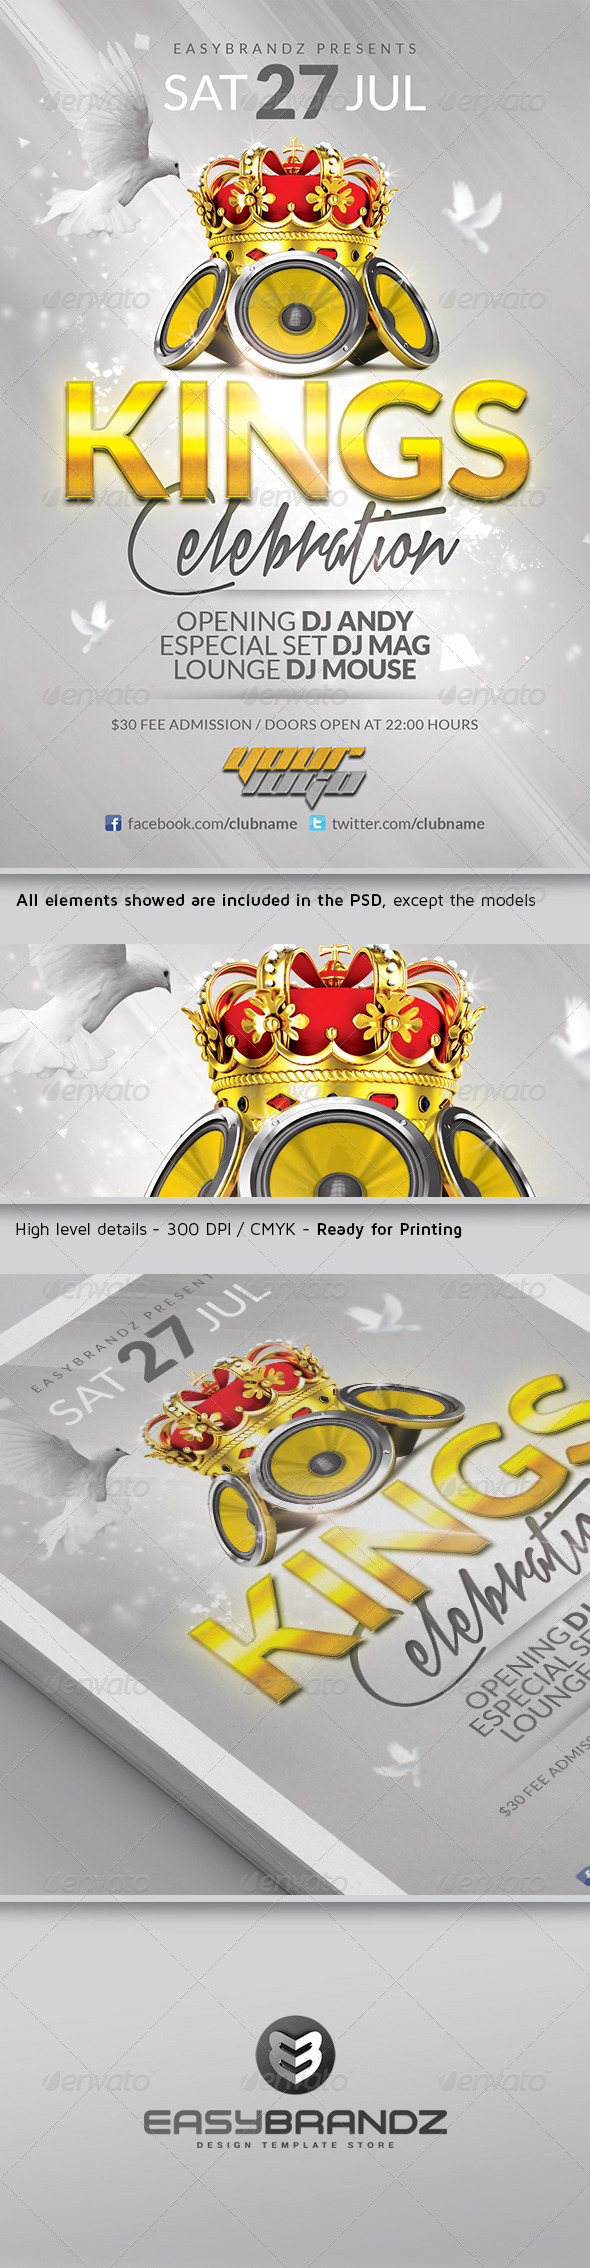 GraphicRiver Kings Celebration Flyer Template 4596636